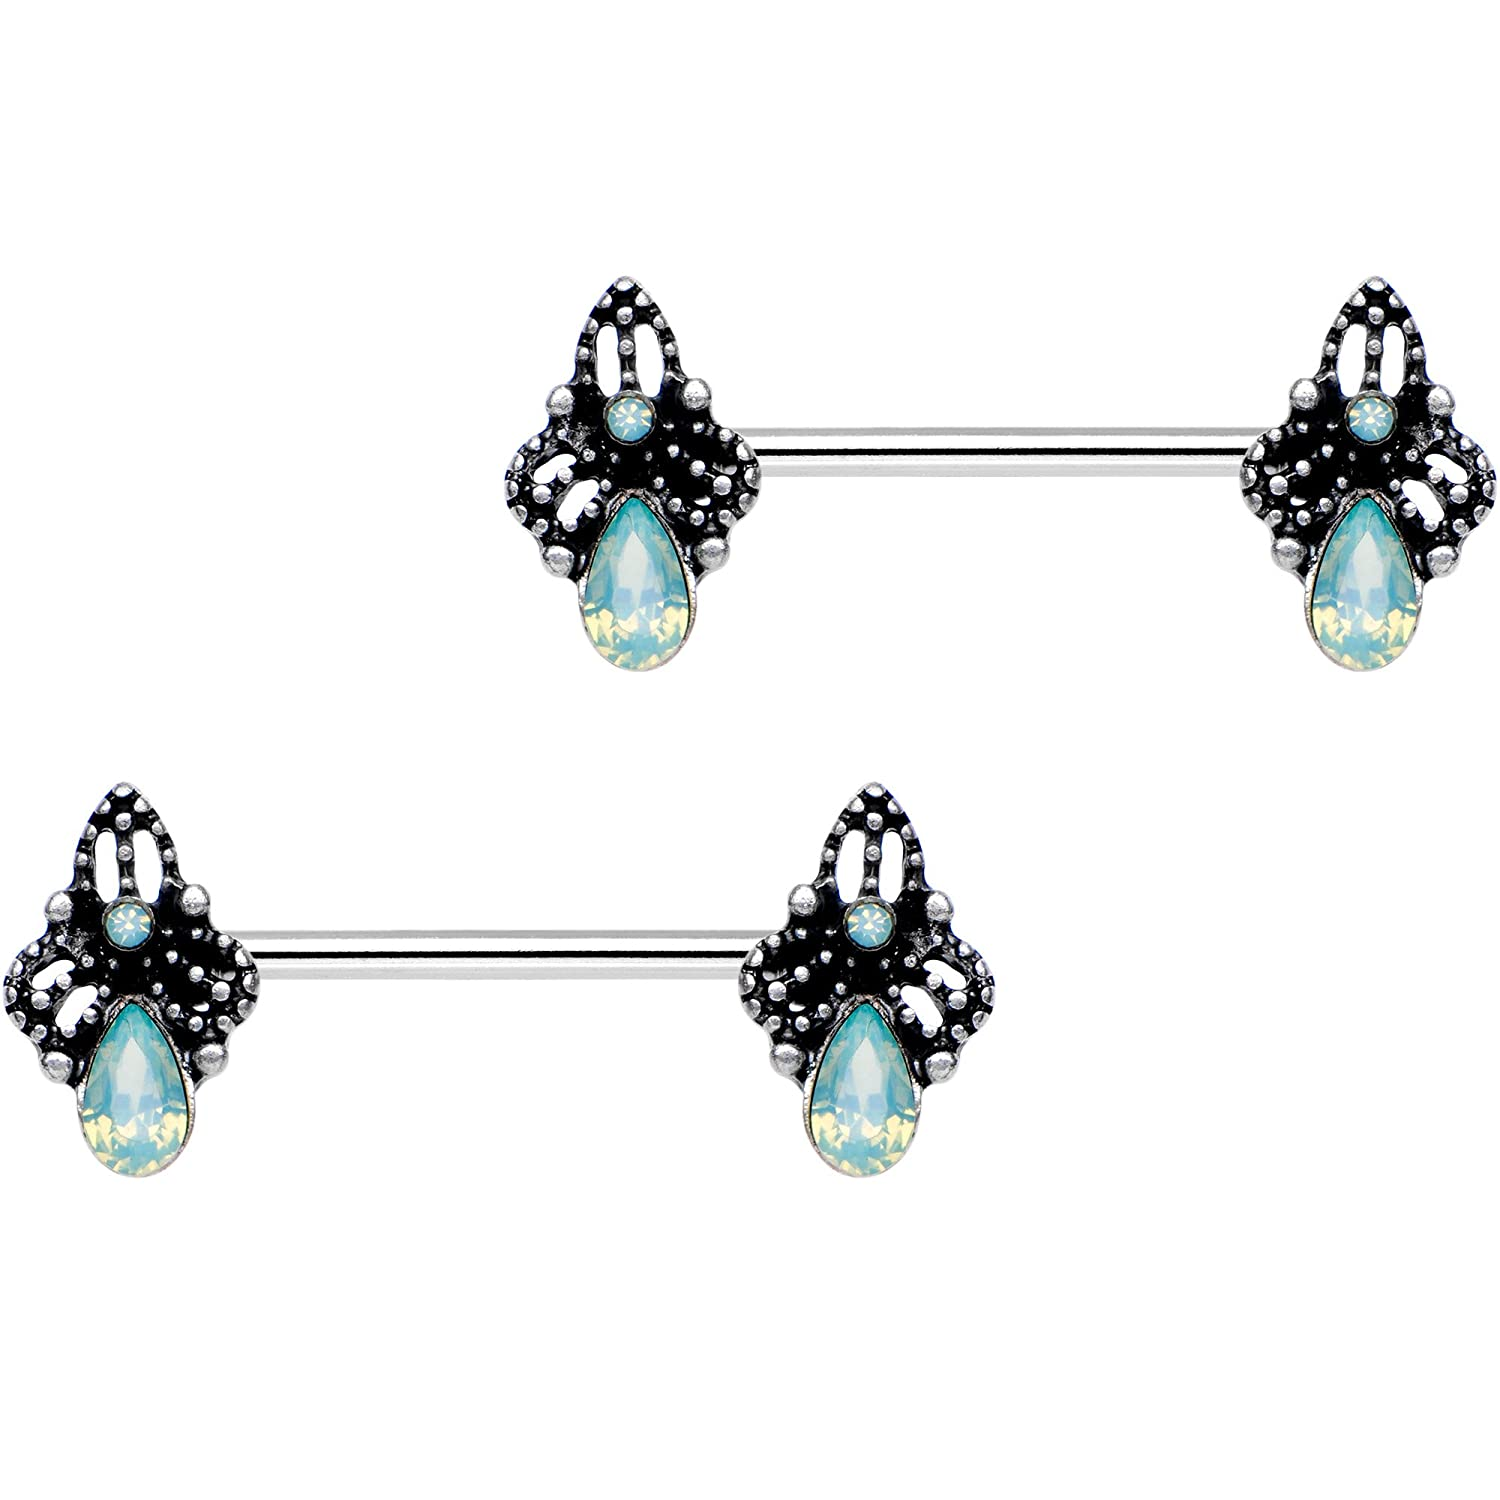 Body Candy Steel Green Accent Victorian Raindrop Barbell Nipple Ring Set of 2 14 Gauge 9//16